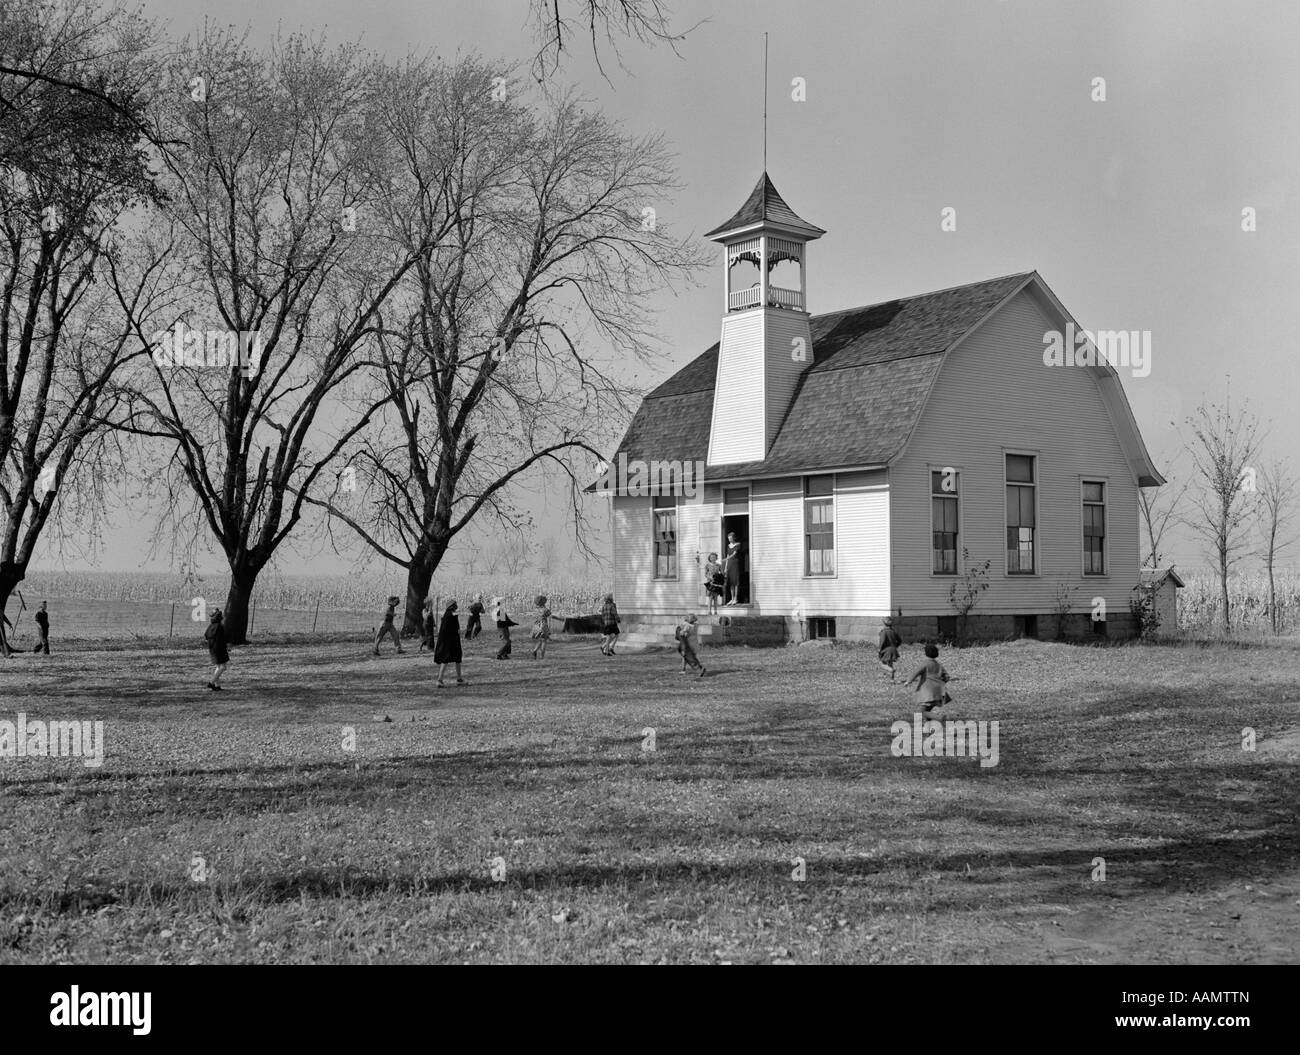 1940s RURAL ONE-ROOM SCHOOLHOUSE WITH KIDS OUTSIDE ON GROUNDS - Stock Image